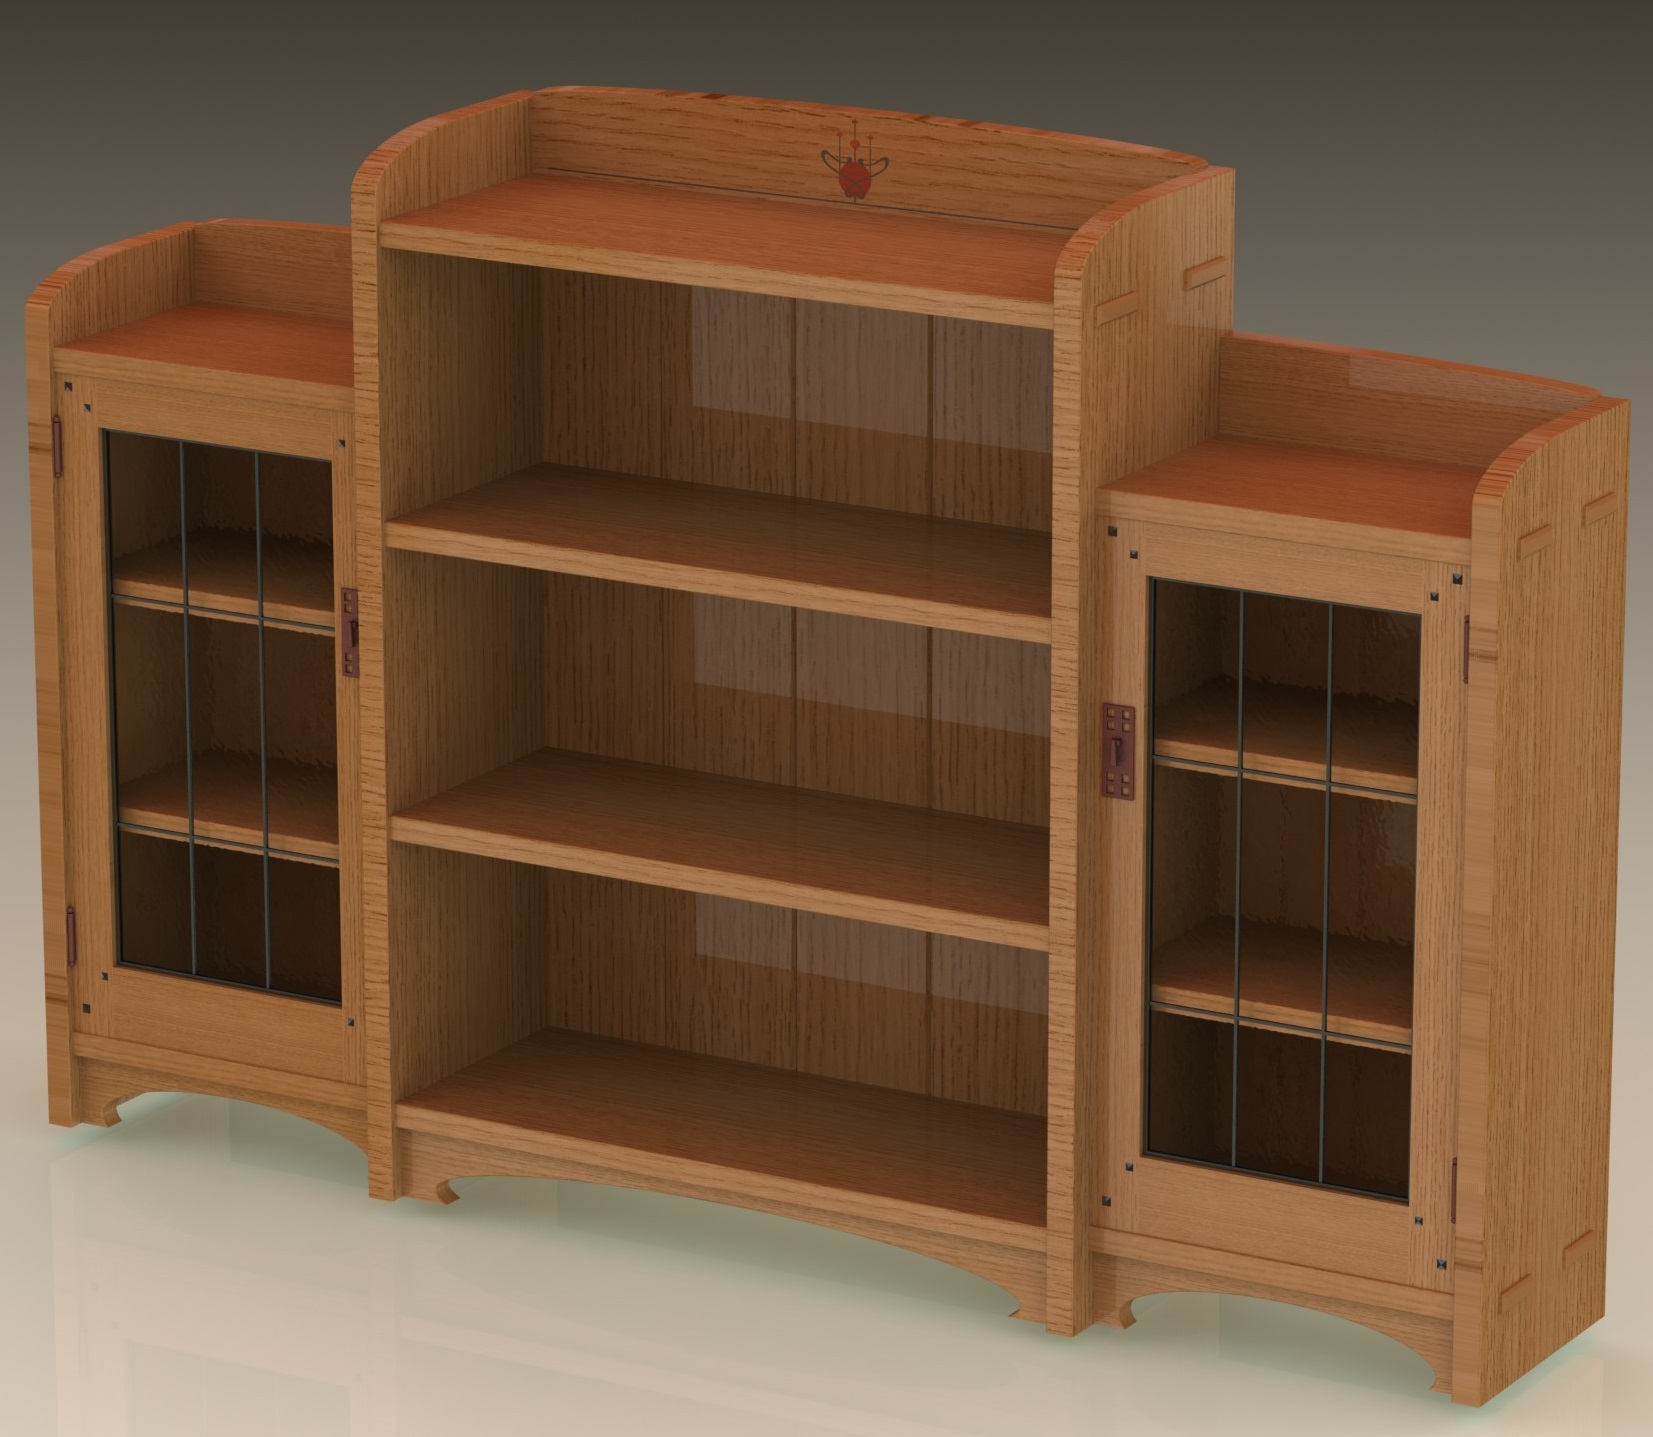 arts crafts bookcase another option mcglynn on making. Black Bedroom Furniture Sets. Home Design Ideas